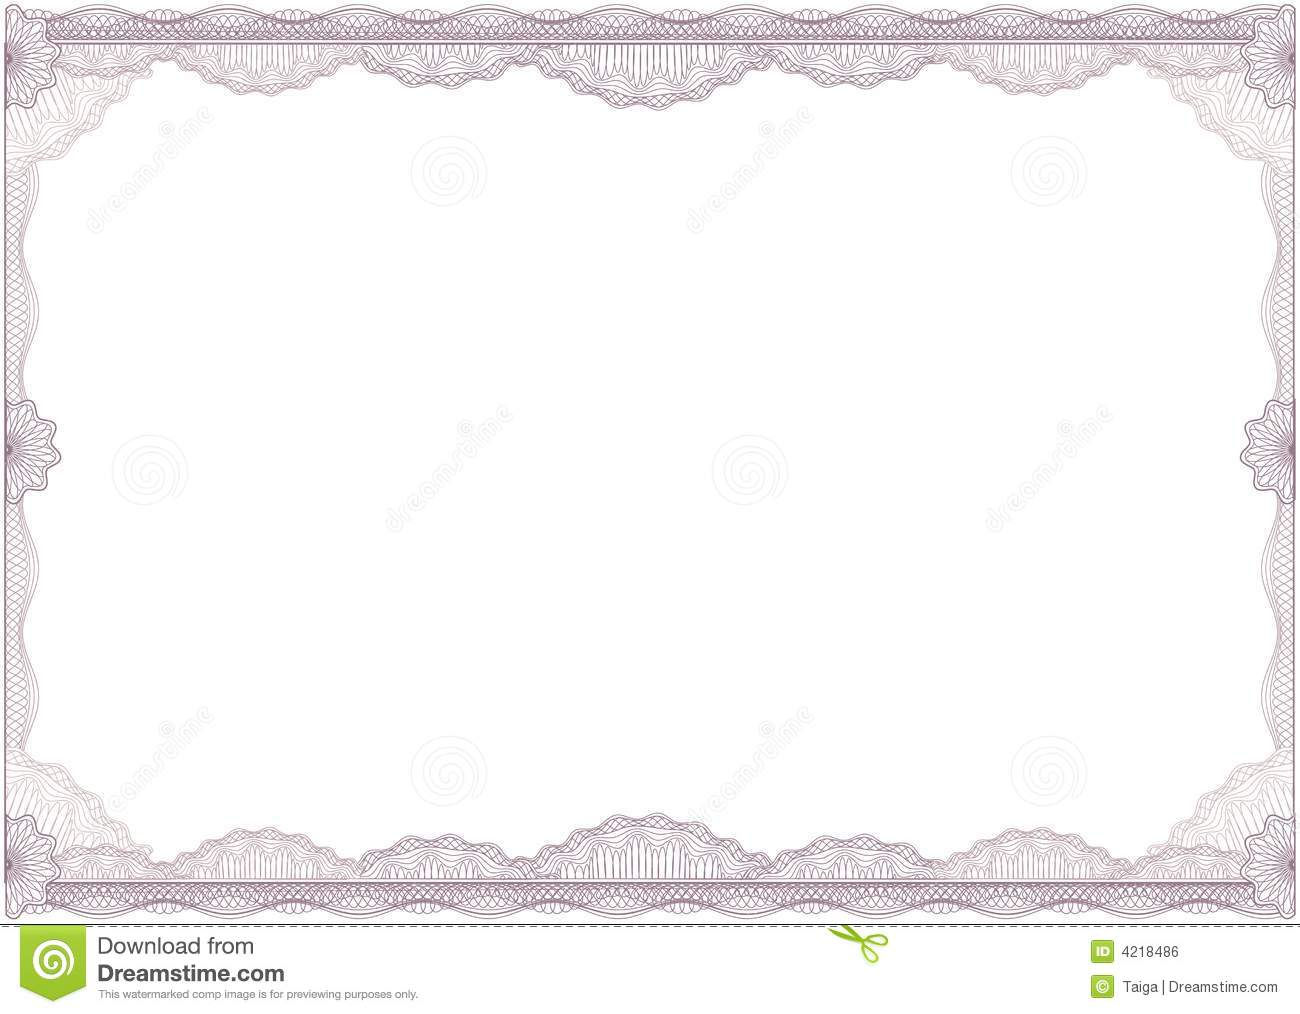 Diploma Or Certificate / Border / A4 / Vector Royalty Free Stock Image ...